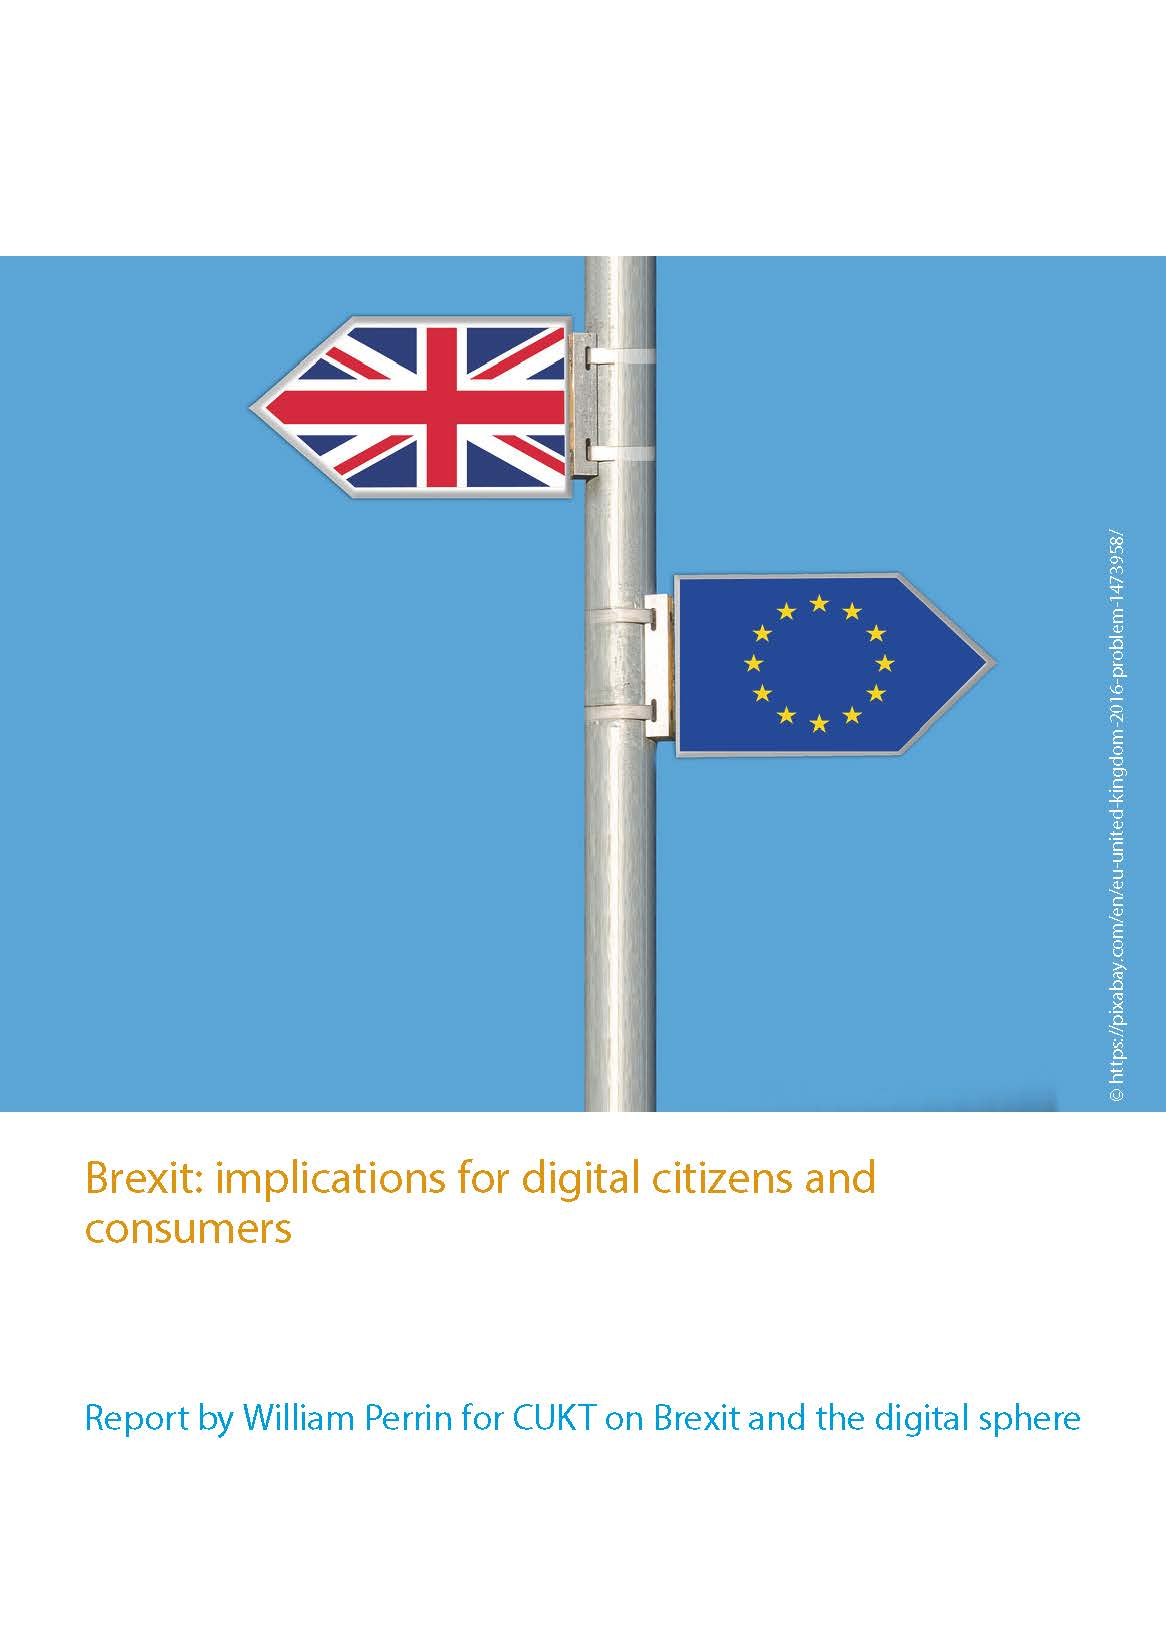 Brexit: Implications for Digital Citizens and Consumers